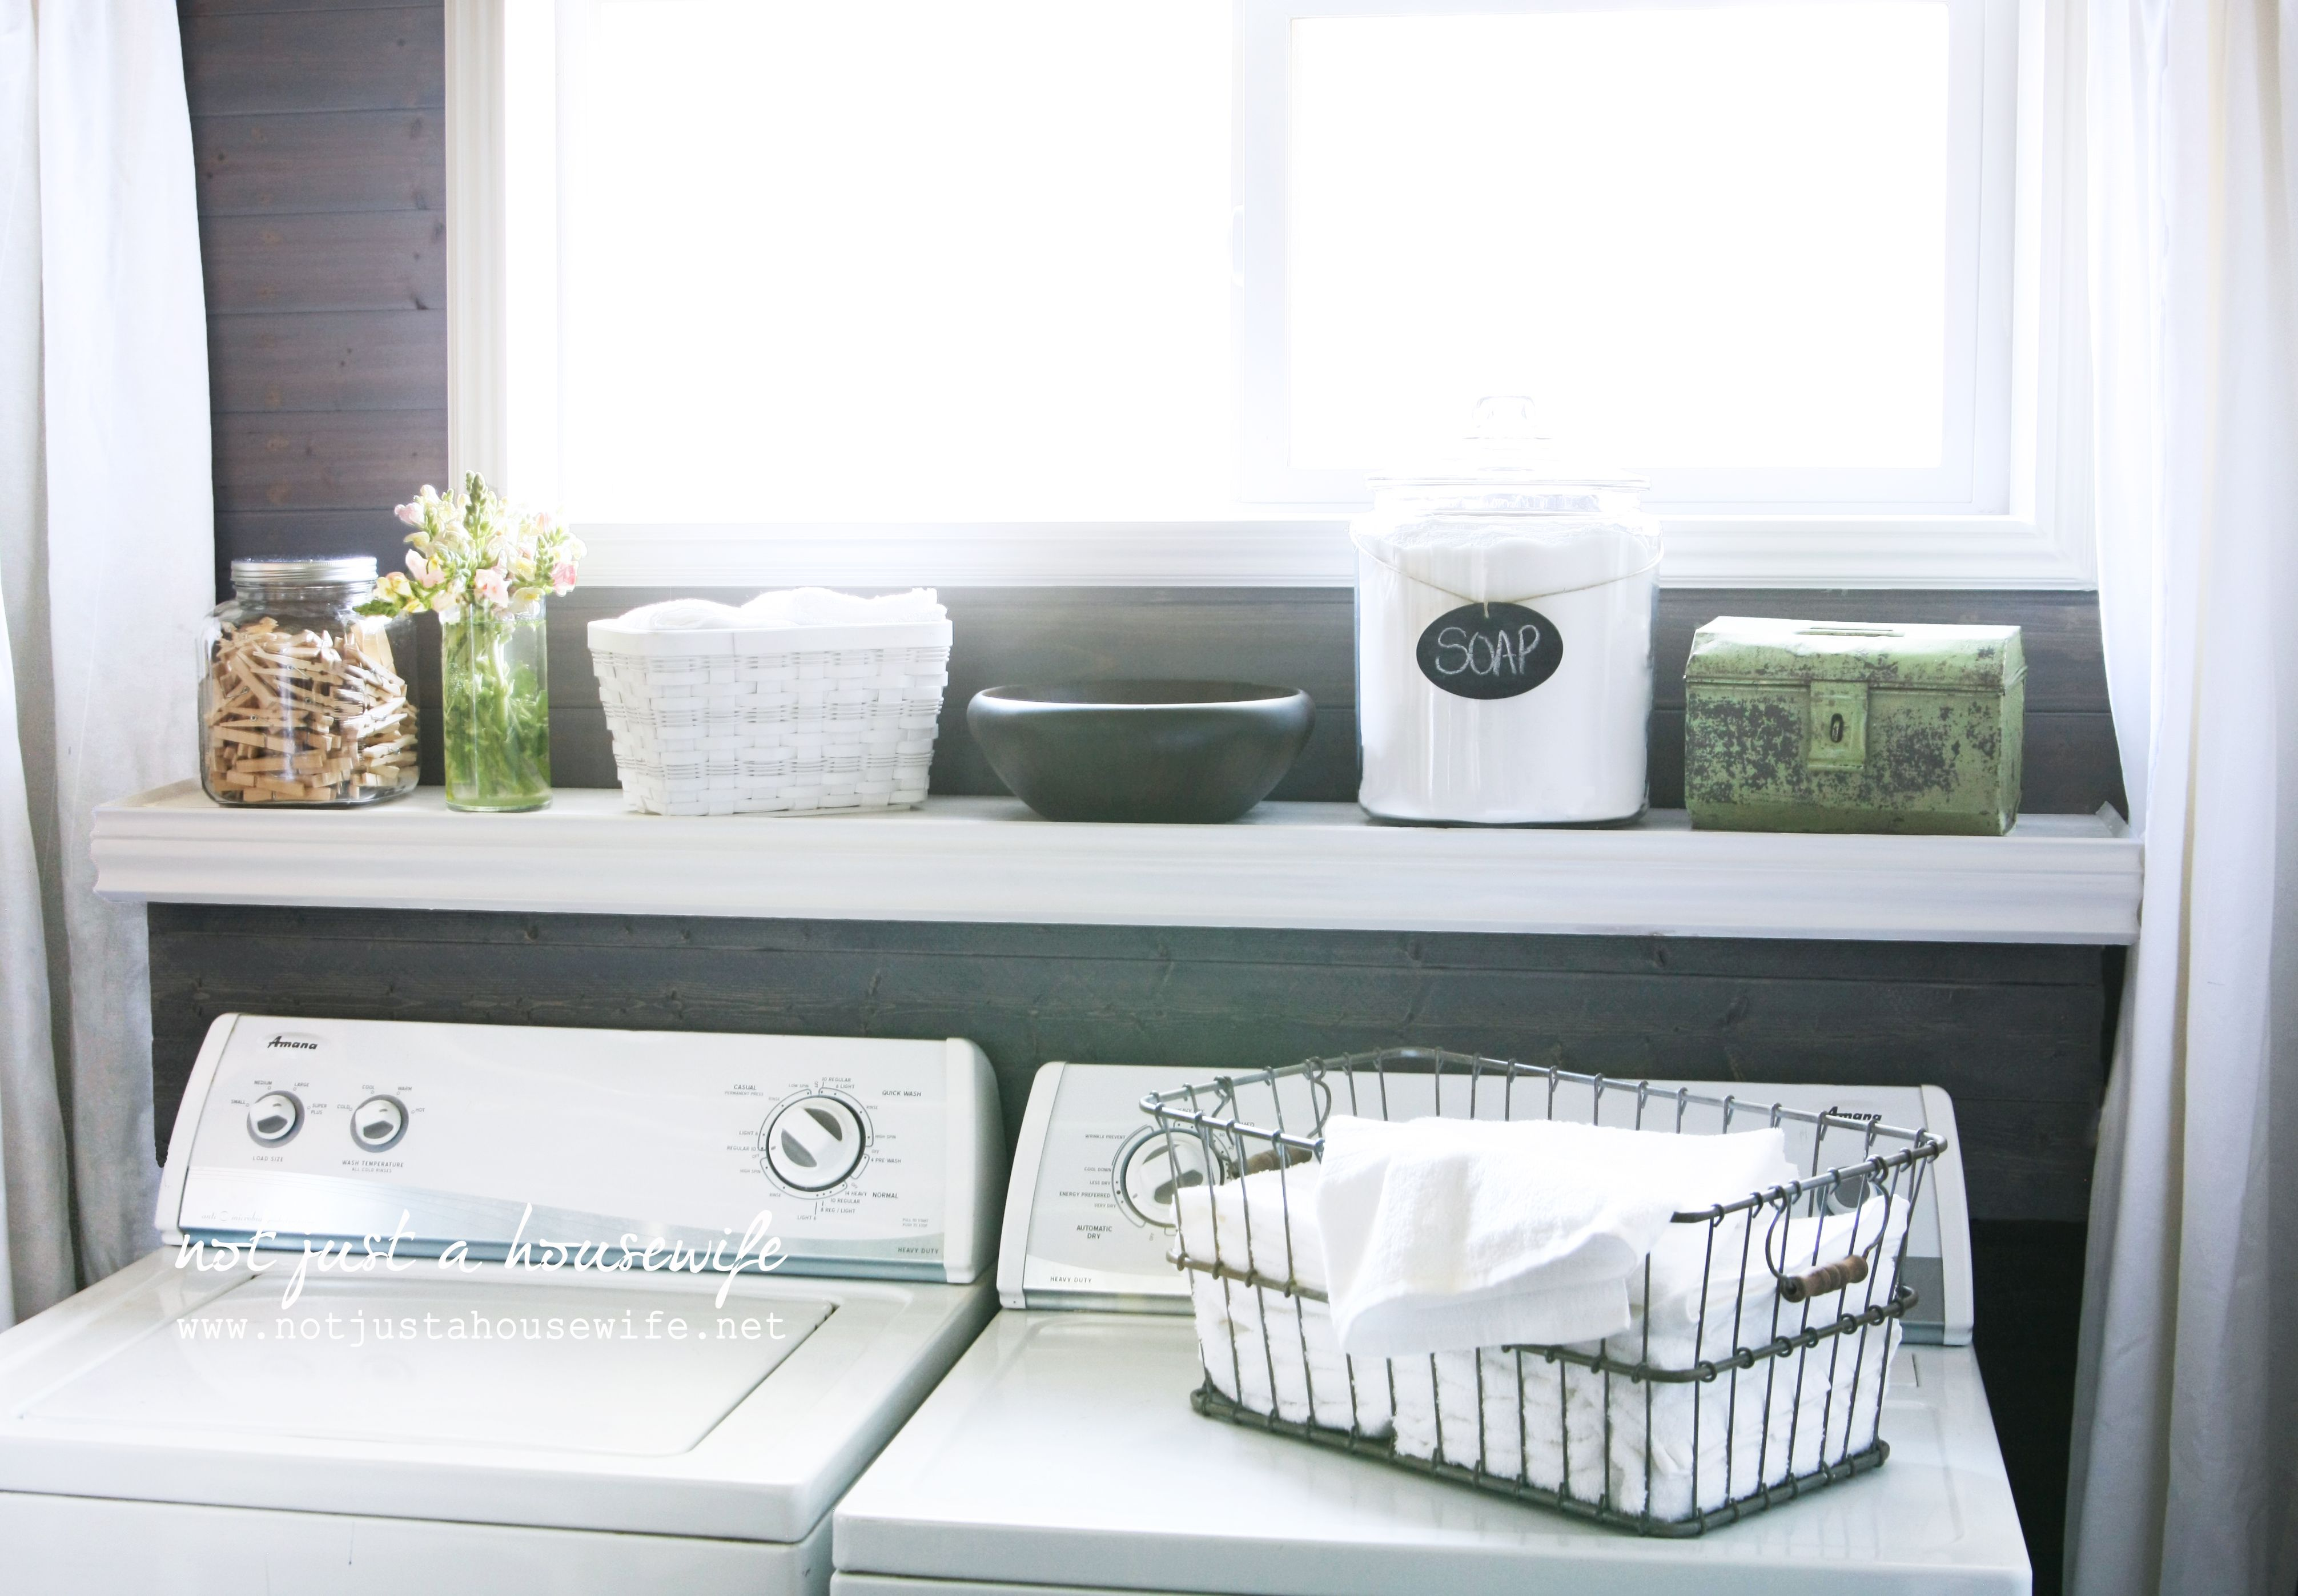 Hinged shelf above a washer and dryer so that you can still get to the plugs and hoses